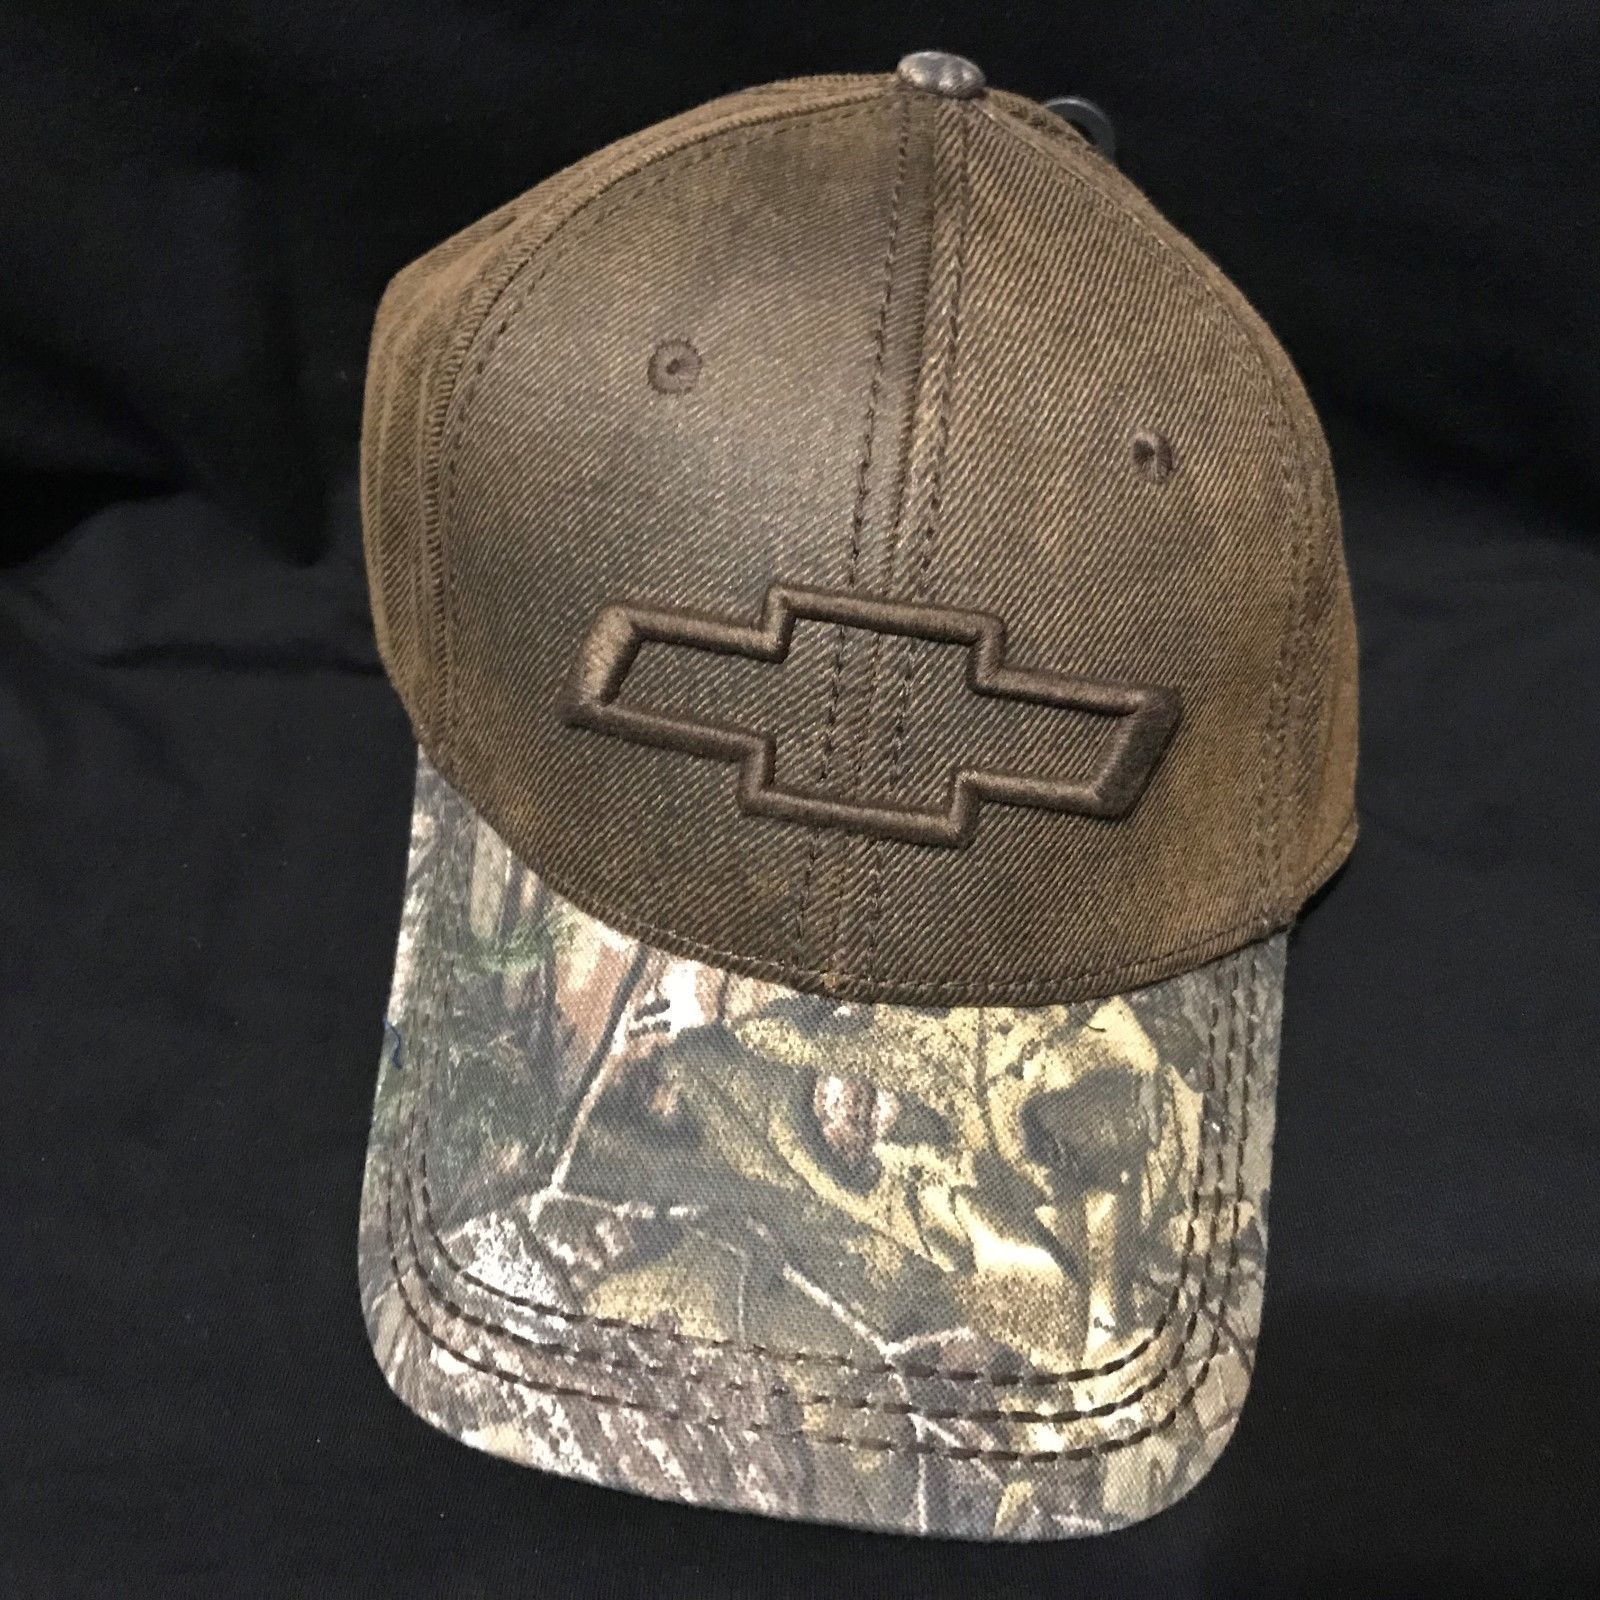 Chevy Logo Realtree Camo trucker baseball cap hat